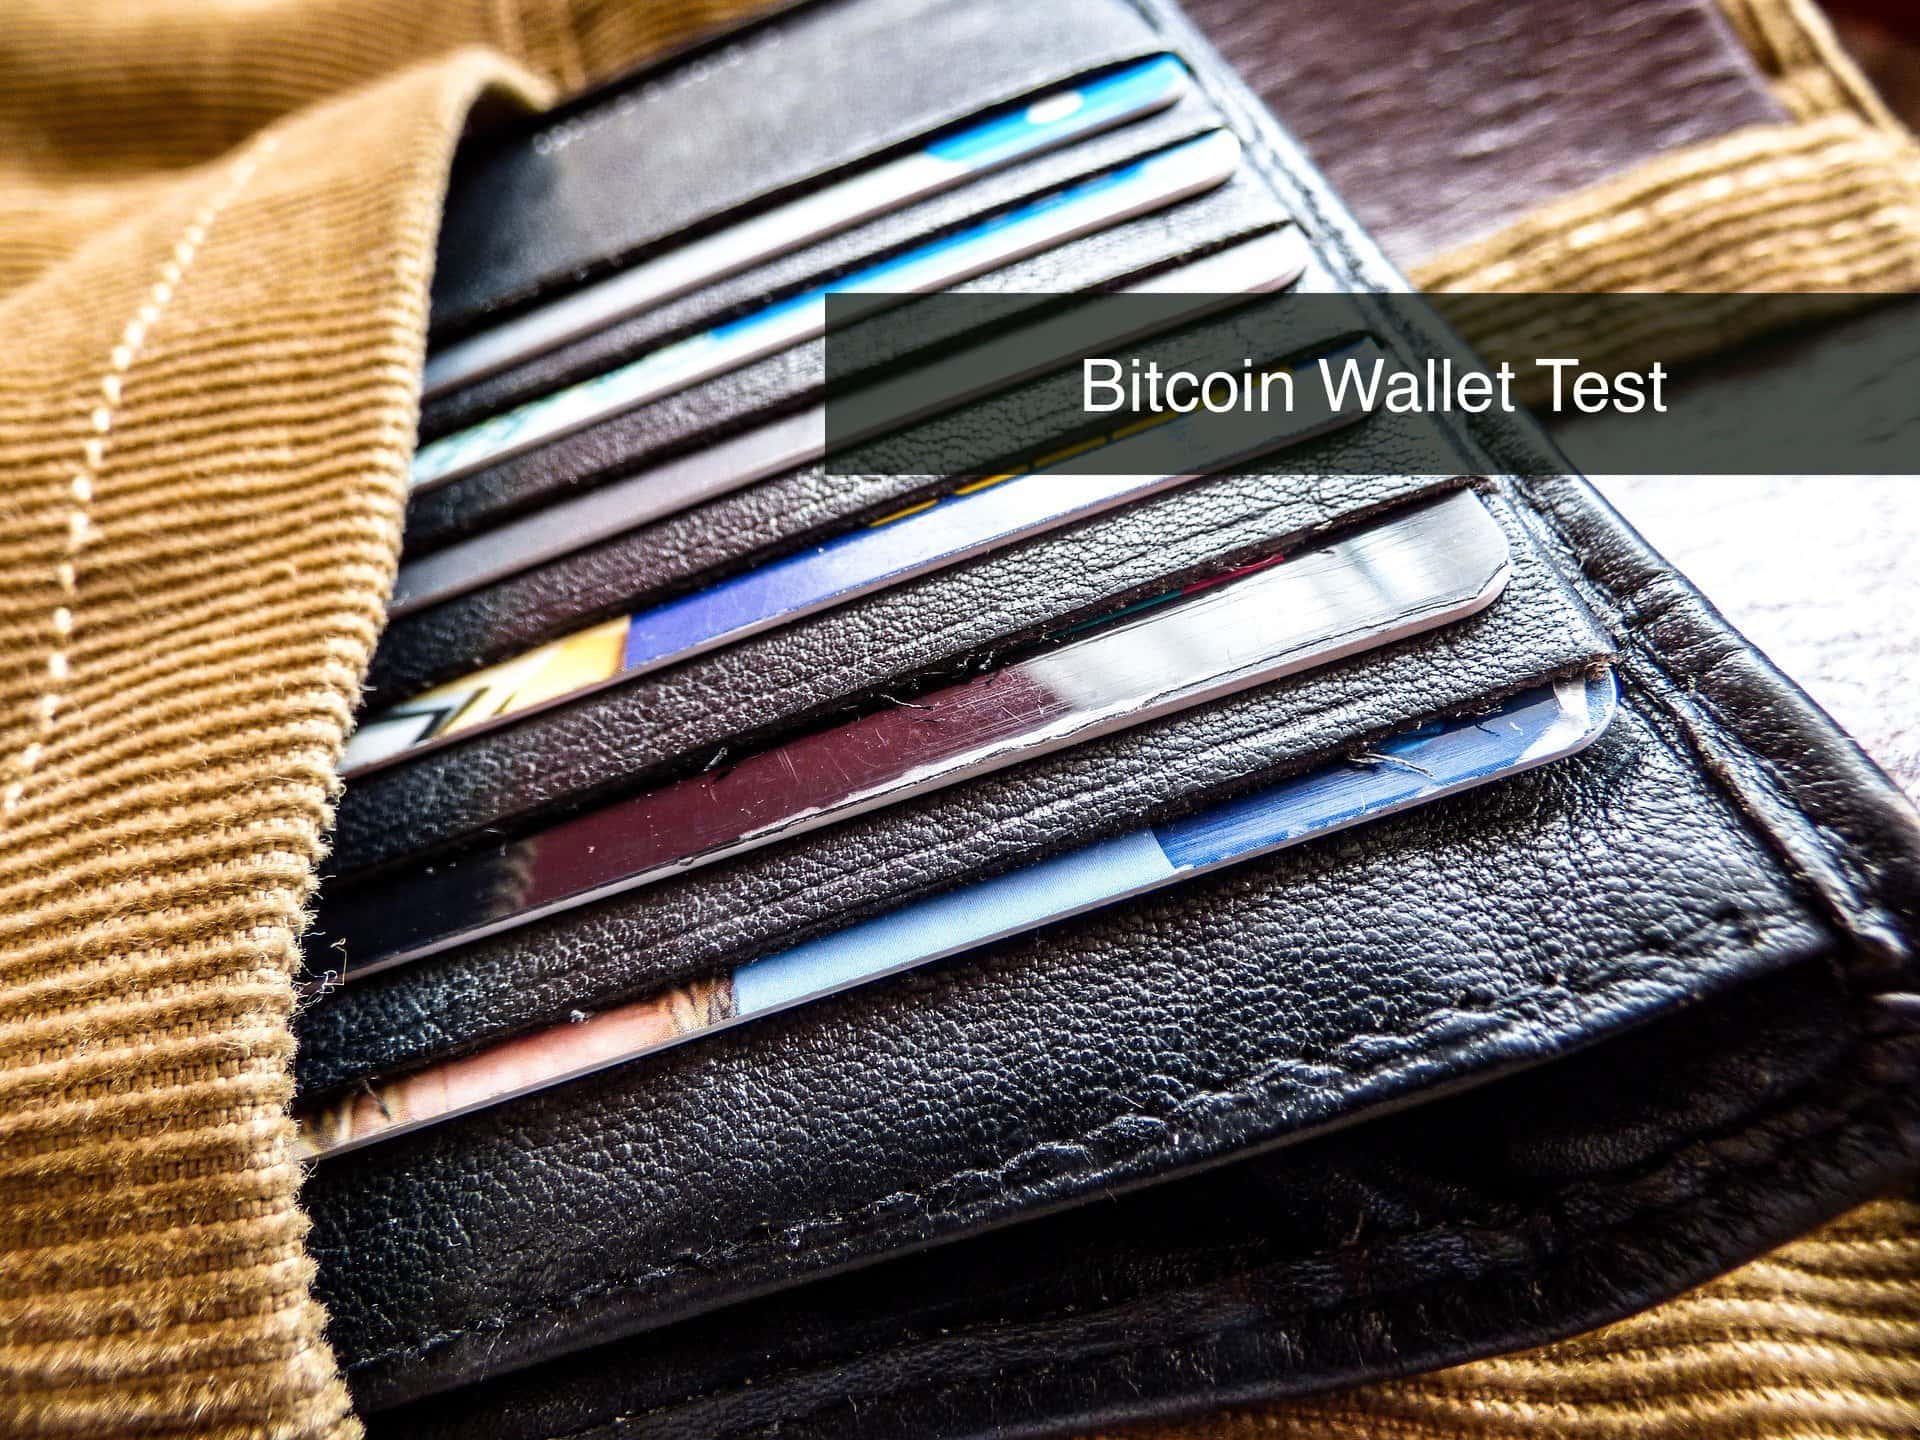 Bitcoin Wallet Test